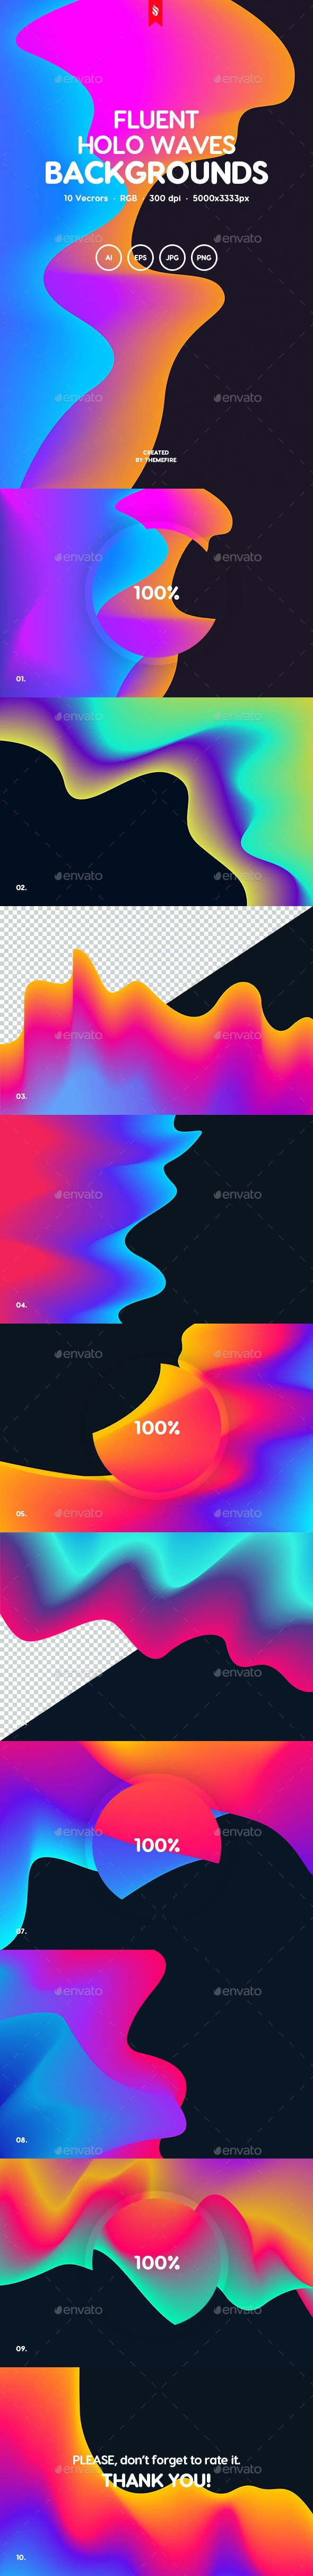 Fluent - Gradient Holographic Waves Backgrounds Pack - Abstract Backgrounds